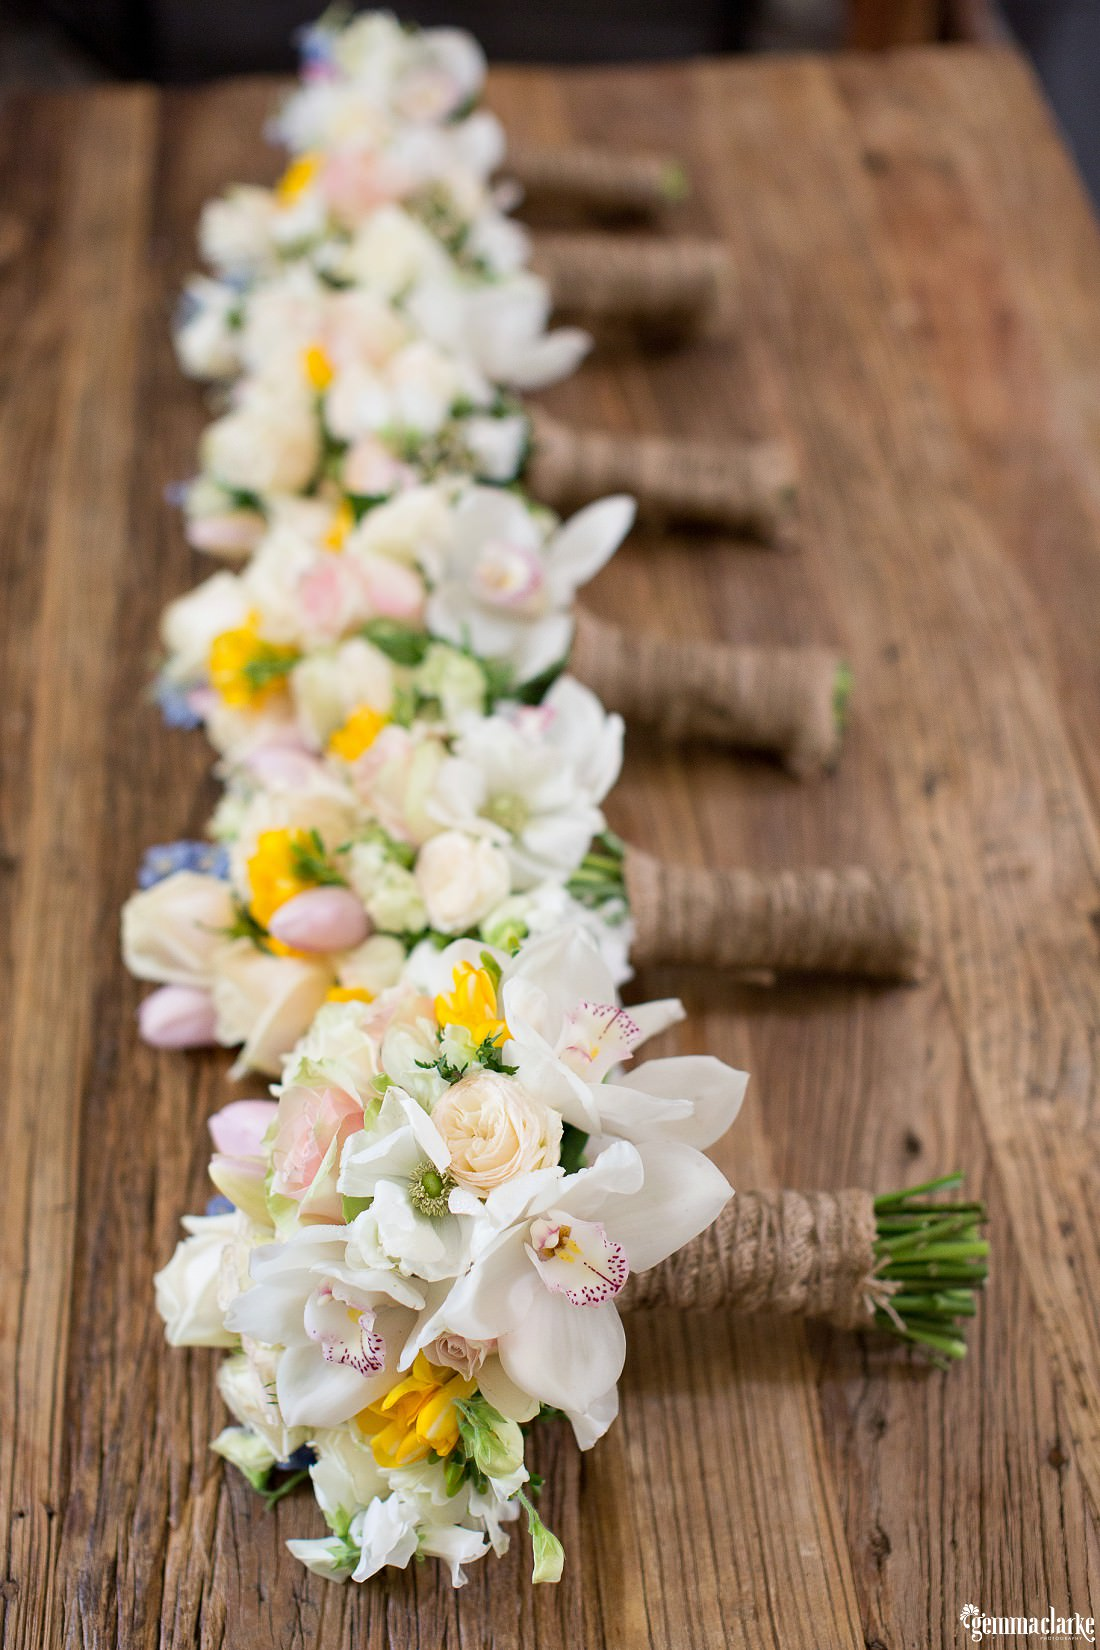 Bride and bridesmaids' bouquets of light coloured flowers - Robert Oatley's Vineyard Wedding